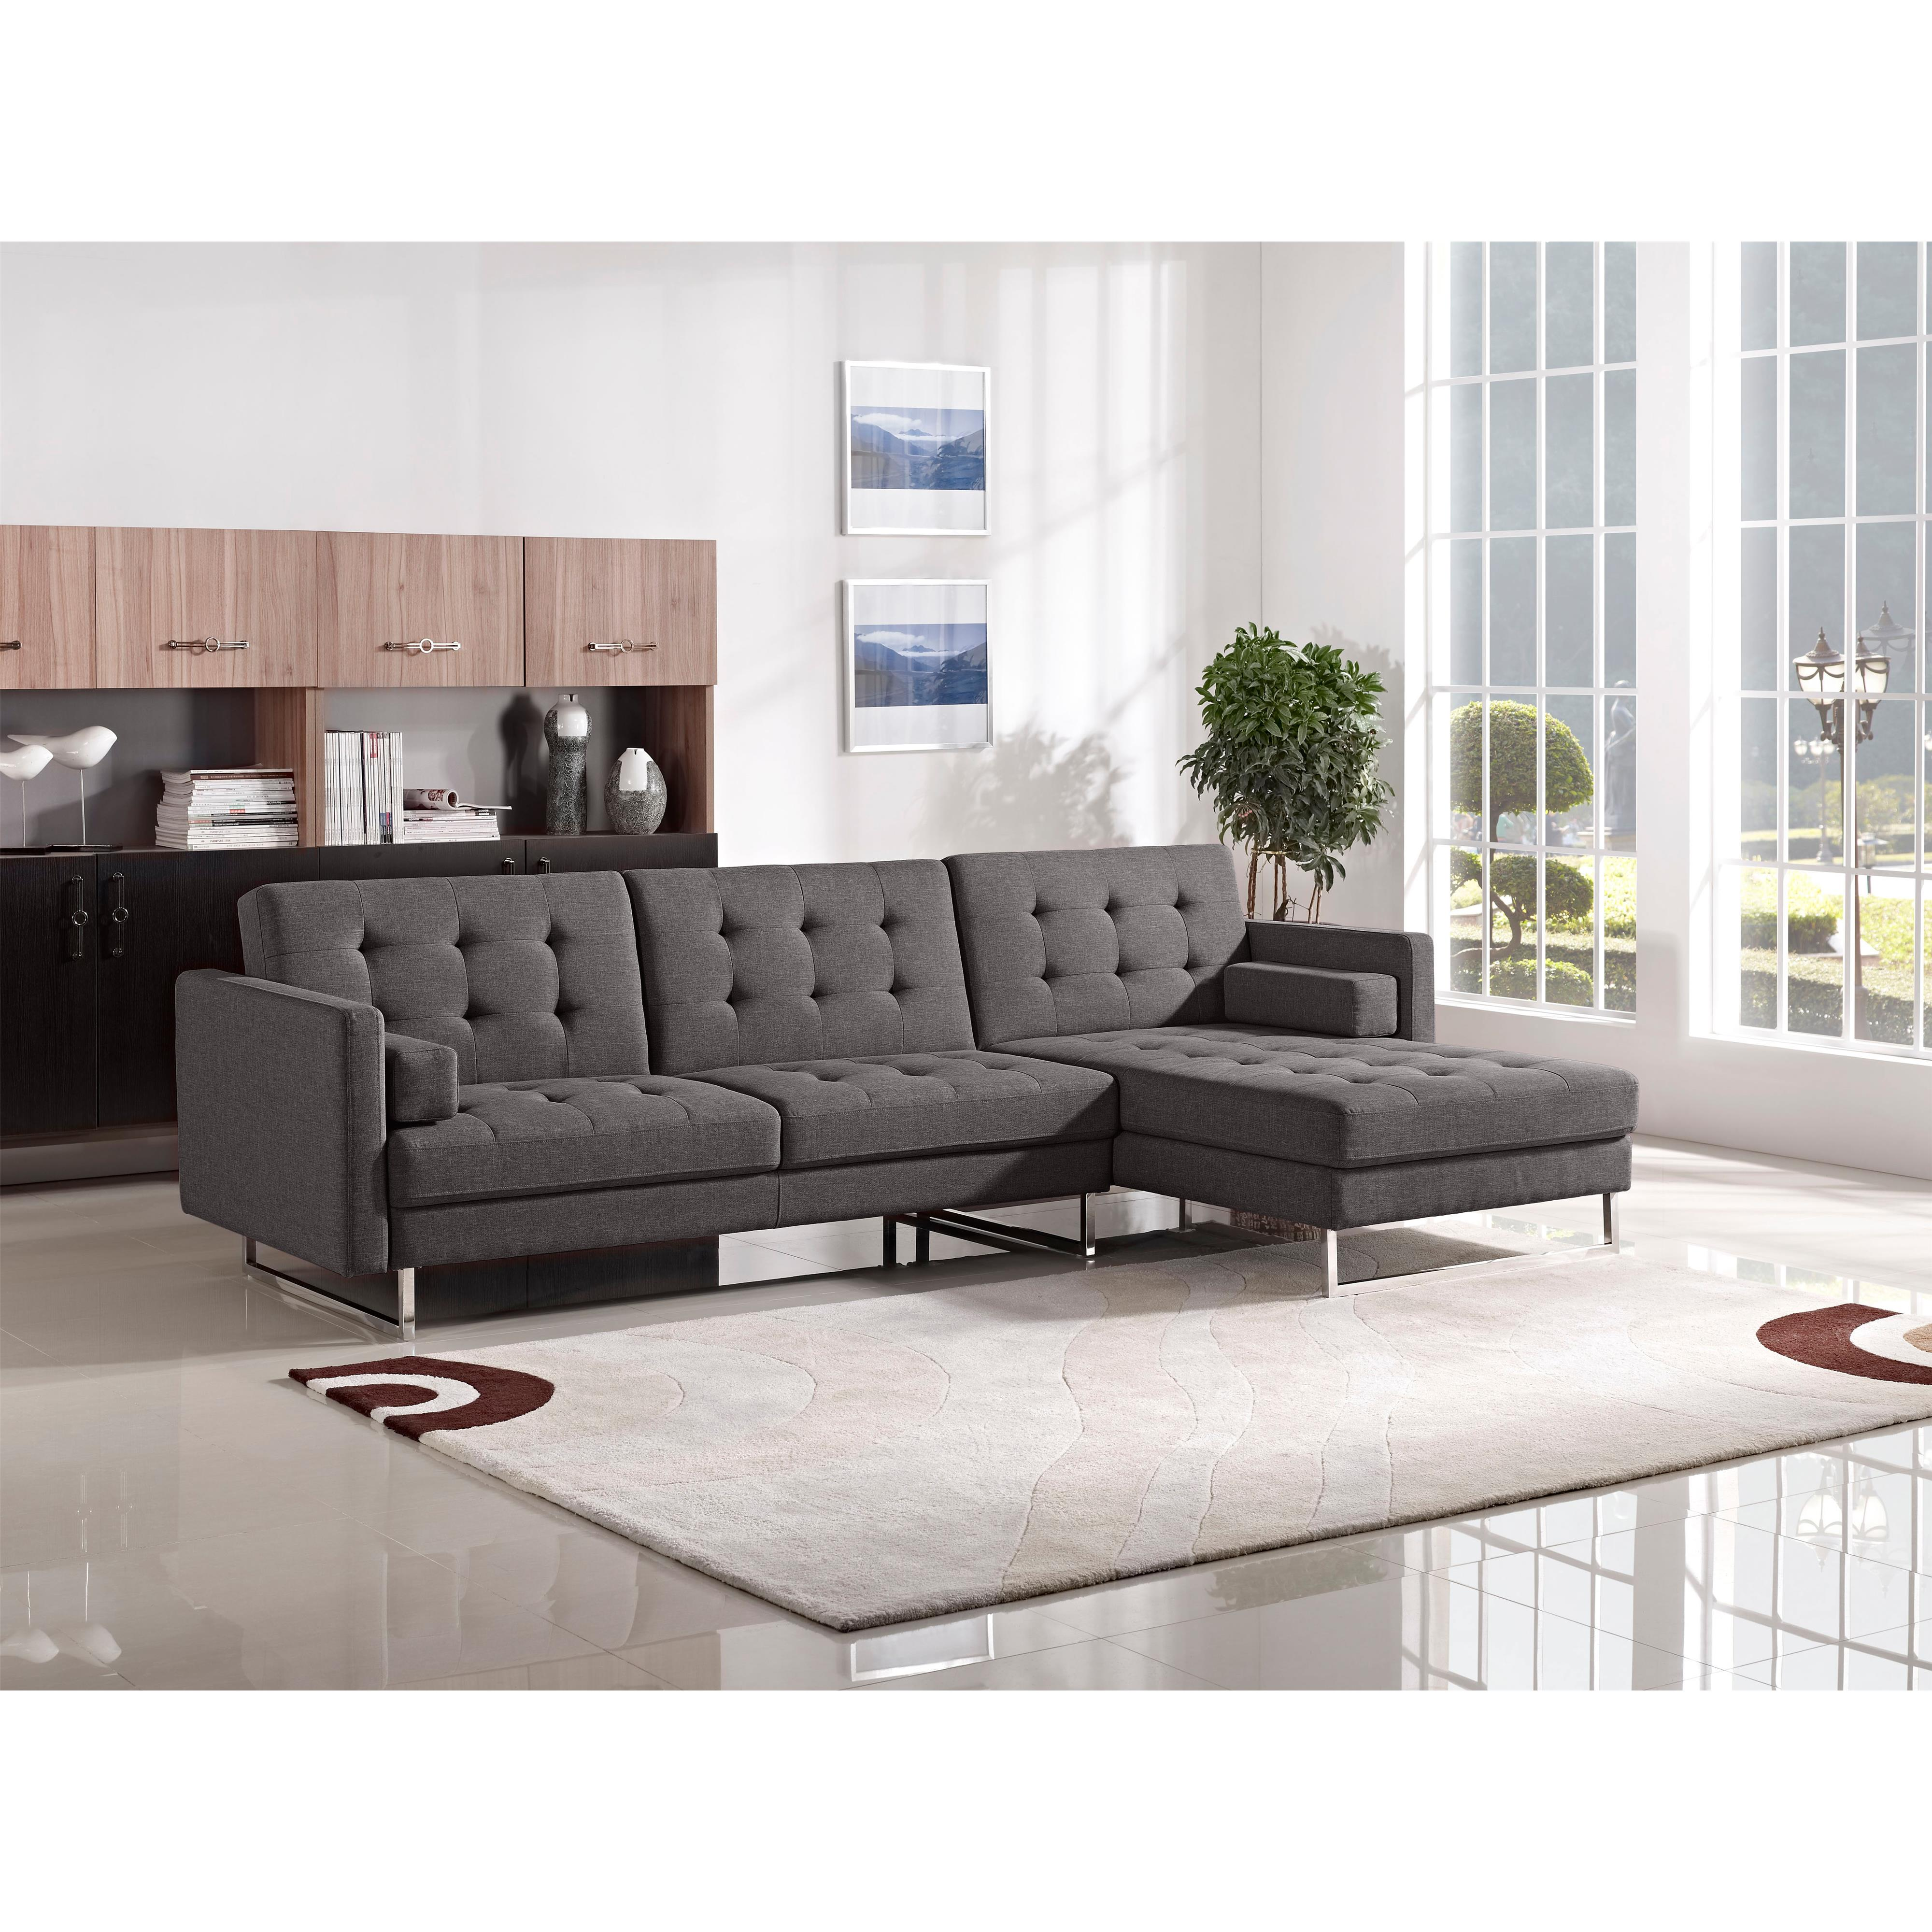 Diamond Sofa Opus Convertible Tufted RF Chaise Sectional - Item Number: OPUSRFSECTGR